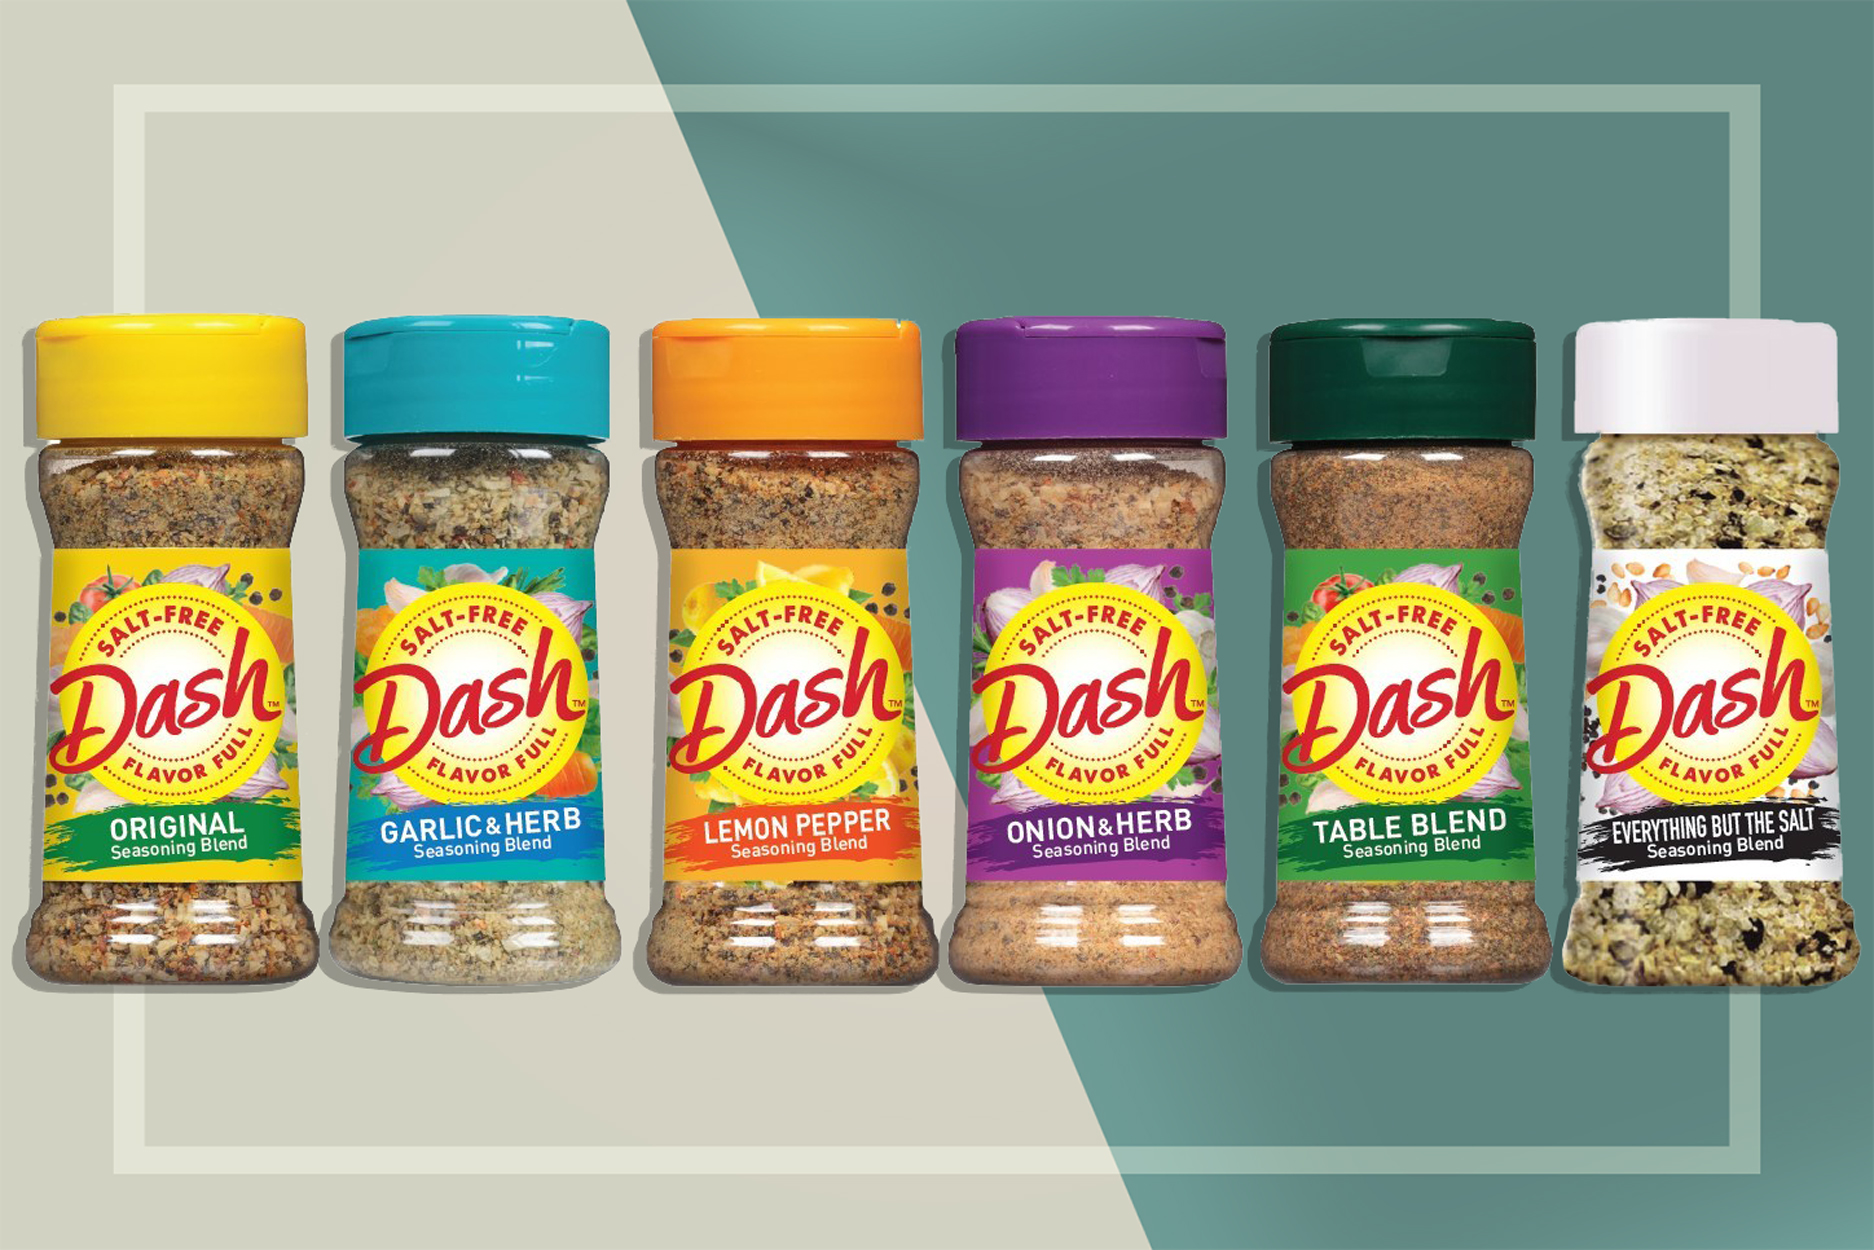 Mrs. Dash is now just Dash